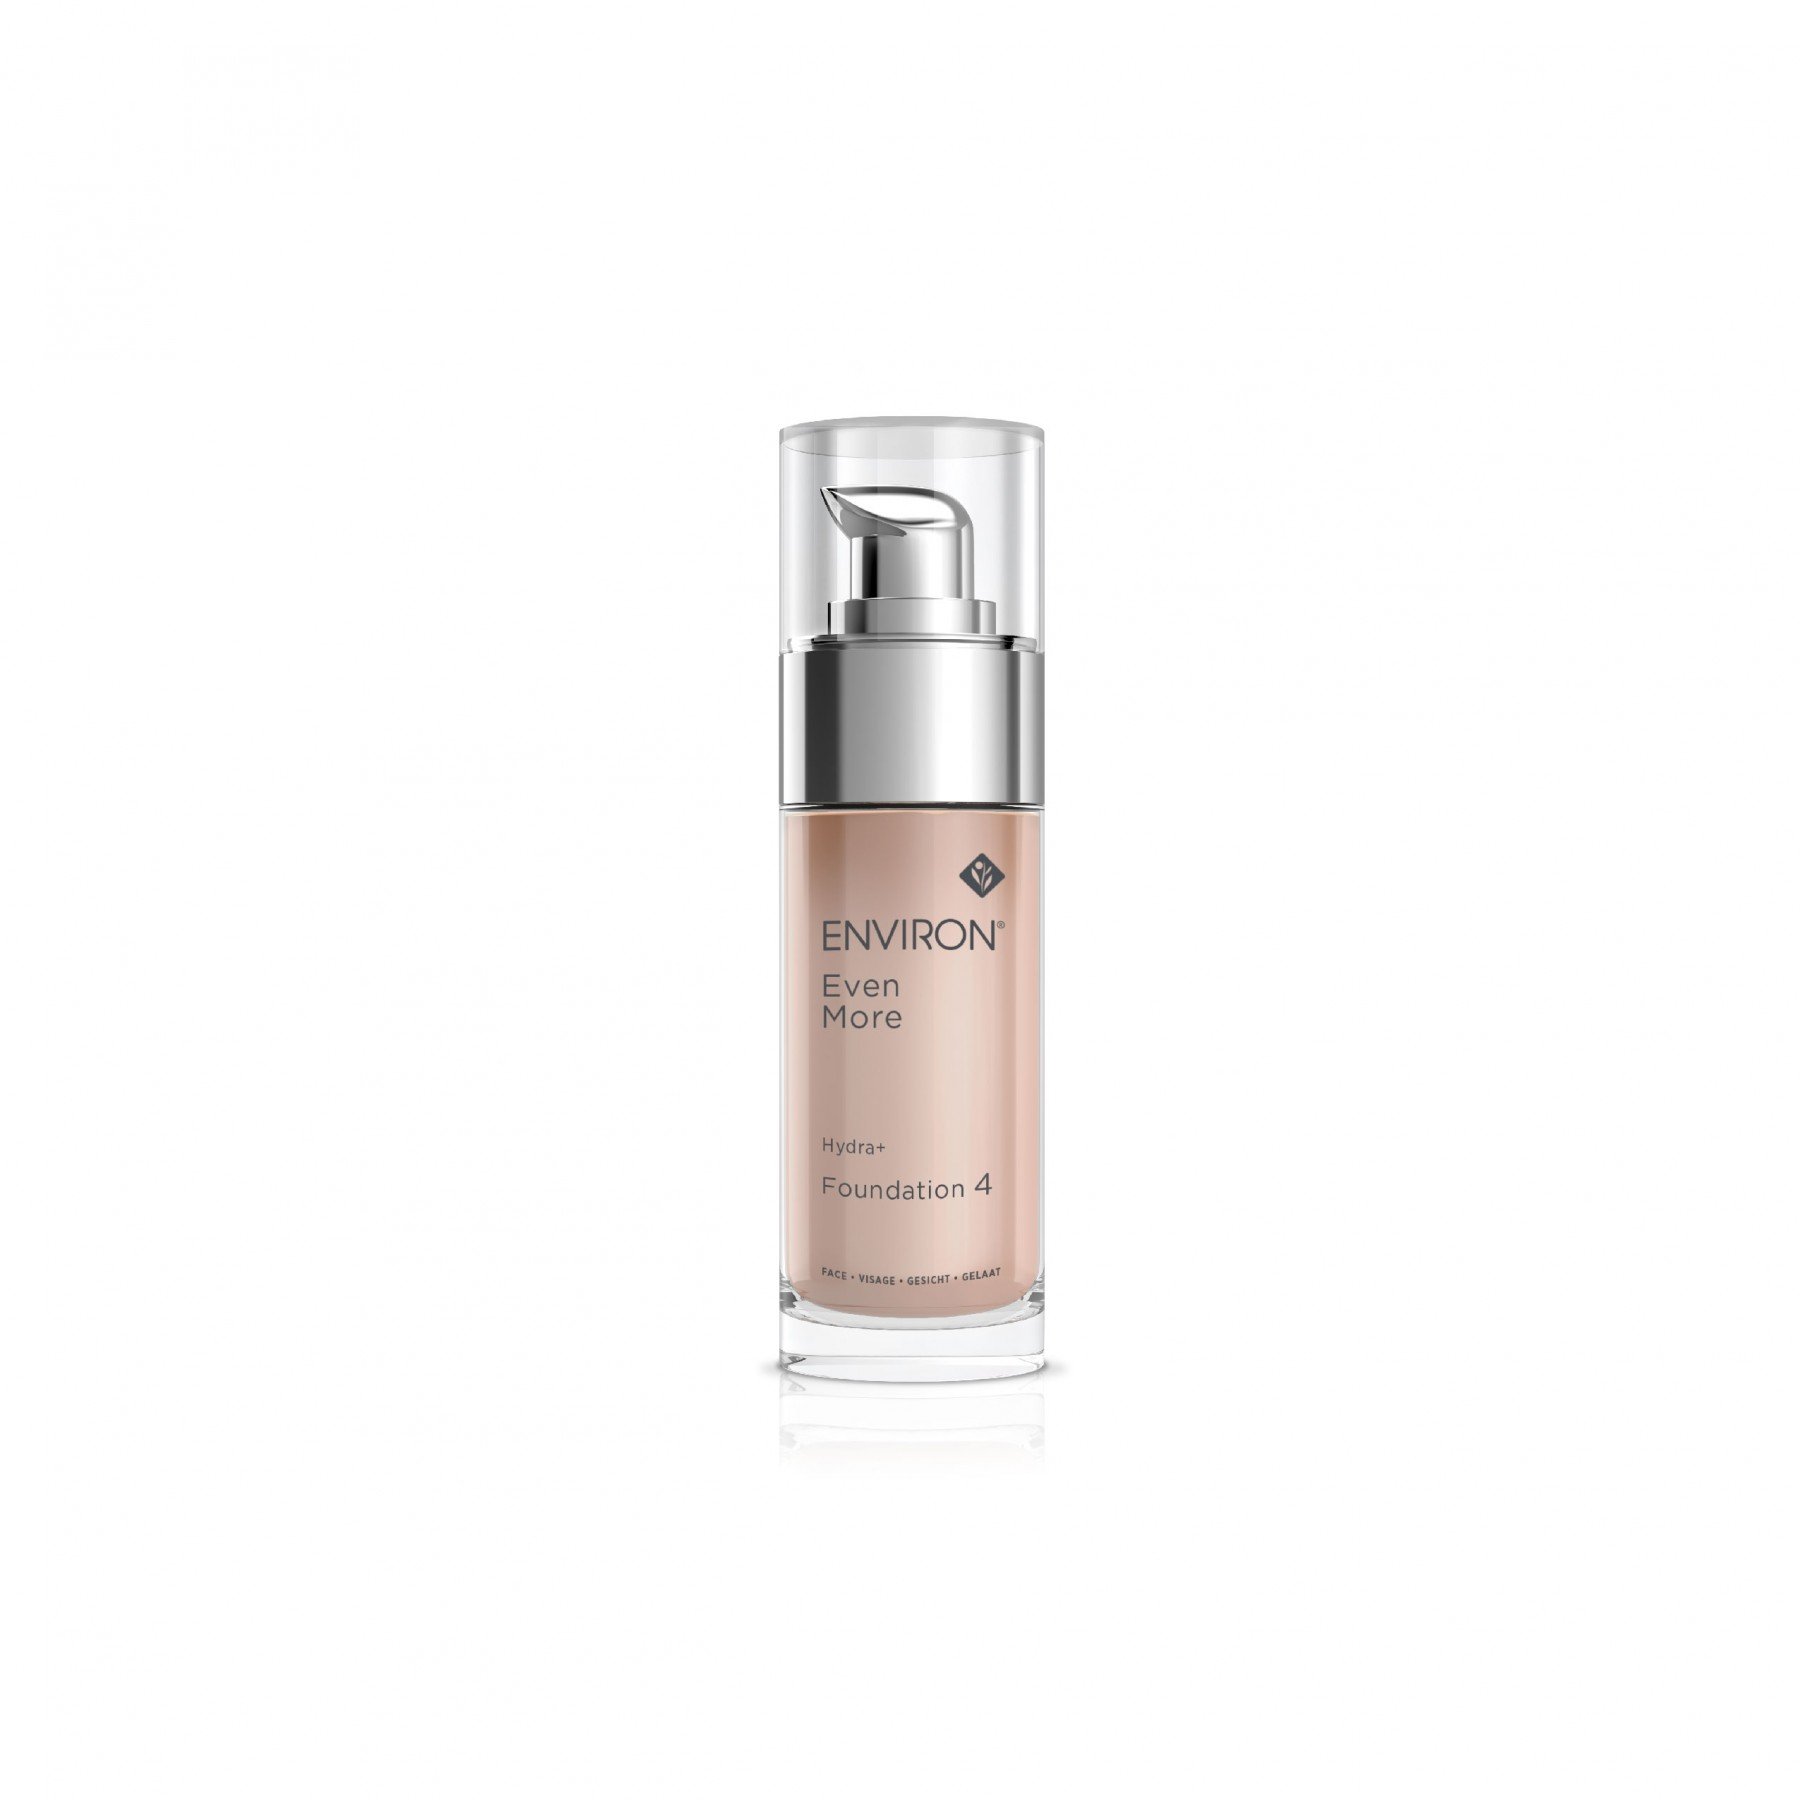 Environ Even More Hydra+ Foundation 4 30ml